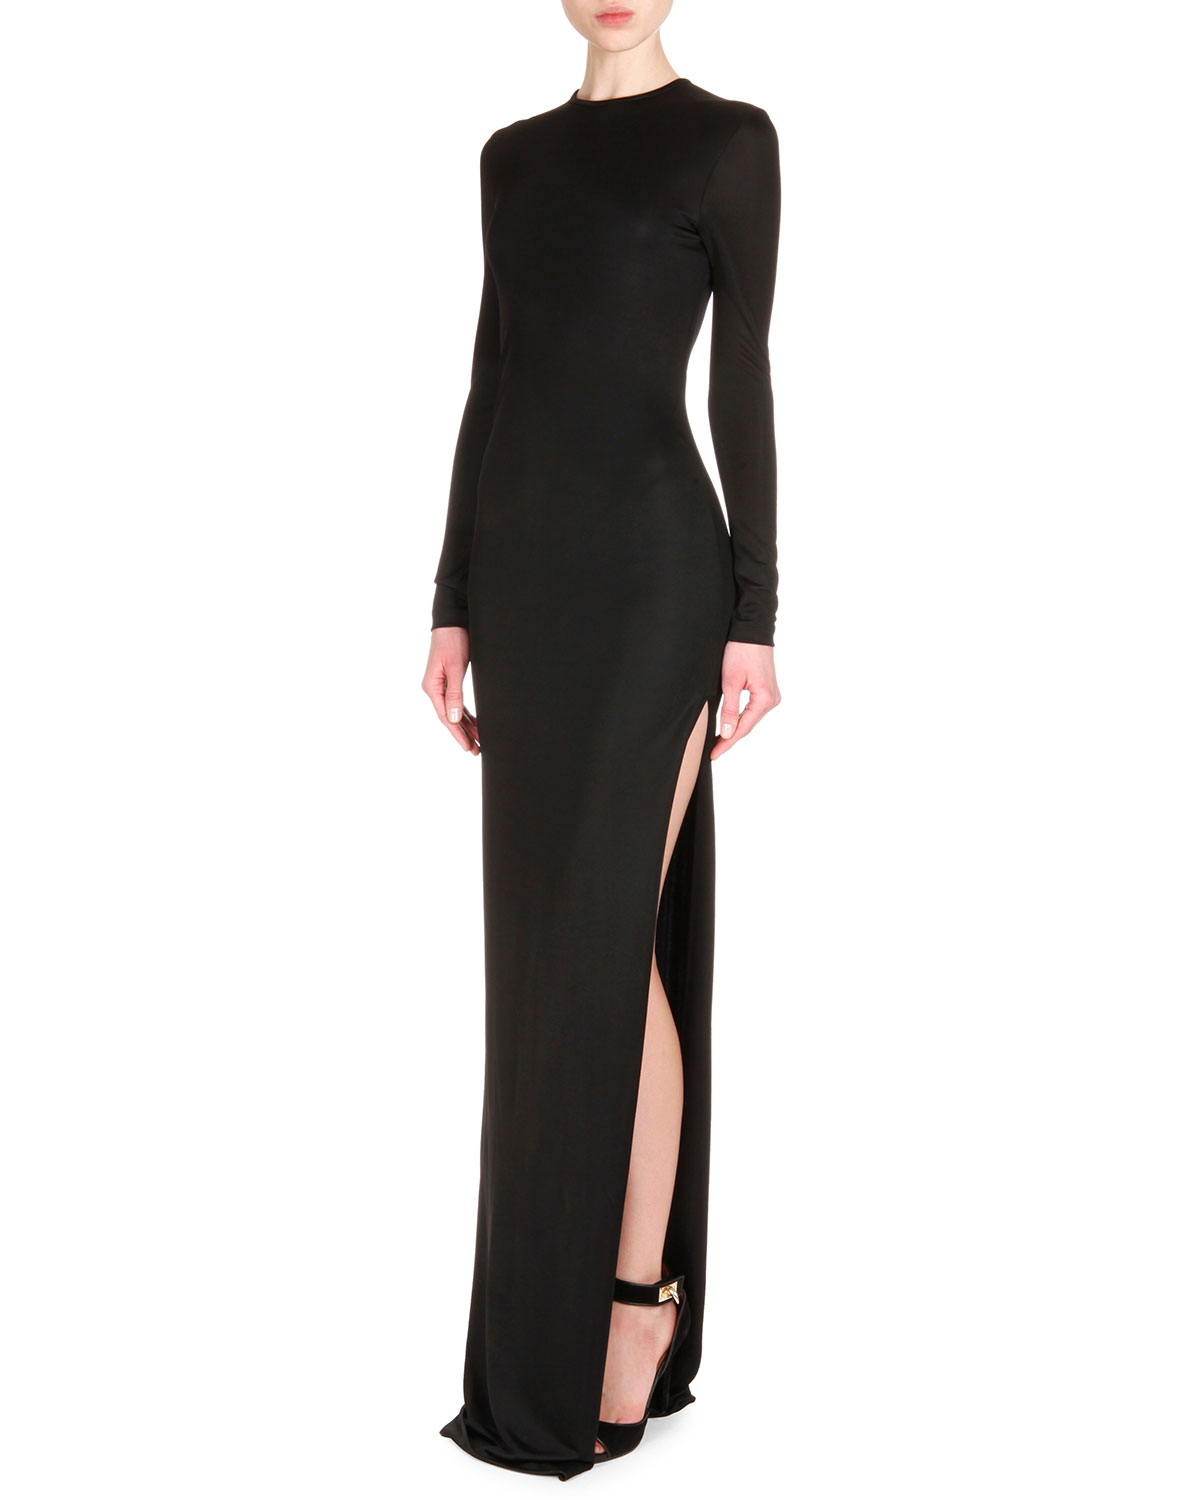 structured long-sleeve mini dress Givenchy Outlet Websites For Sale Online Store CtX1vo